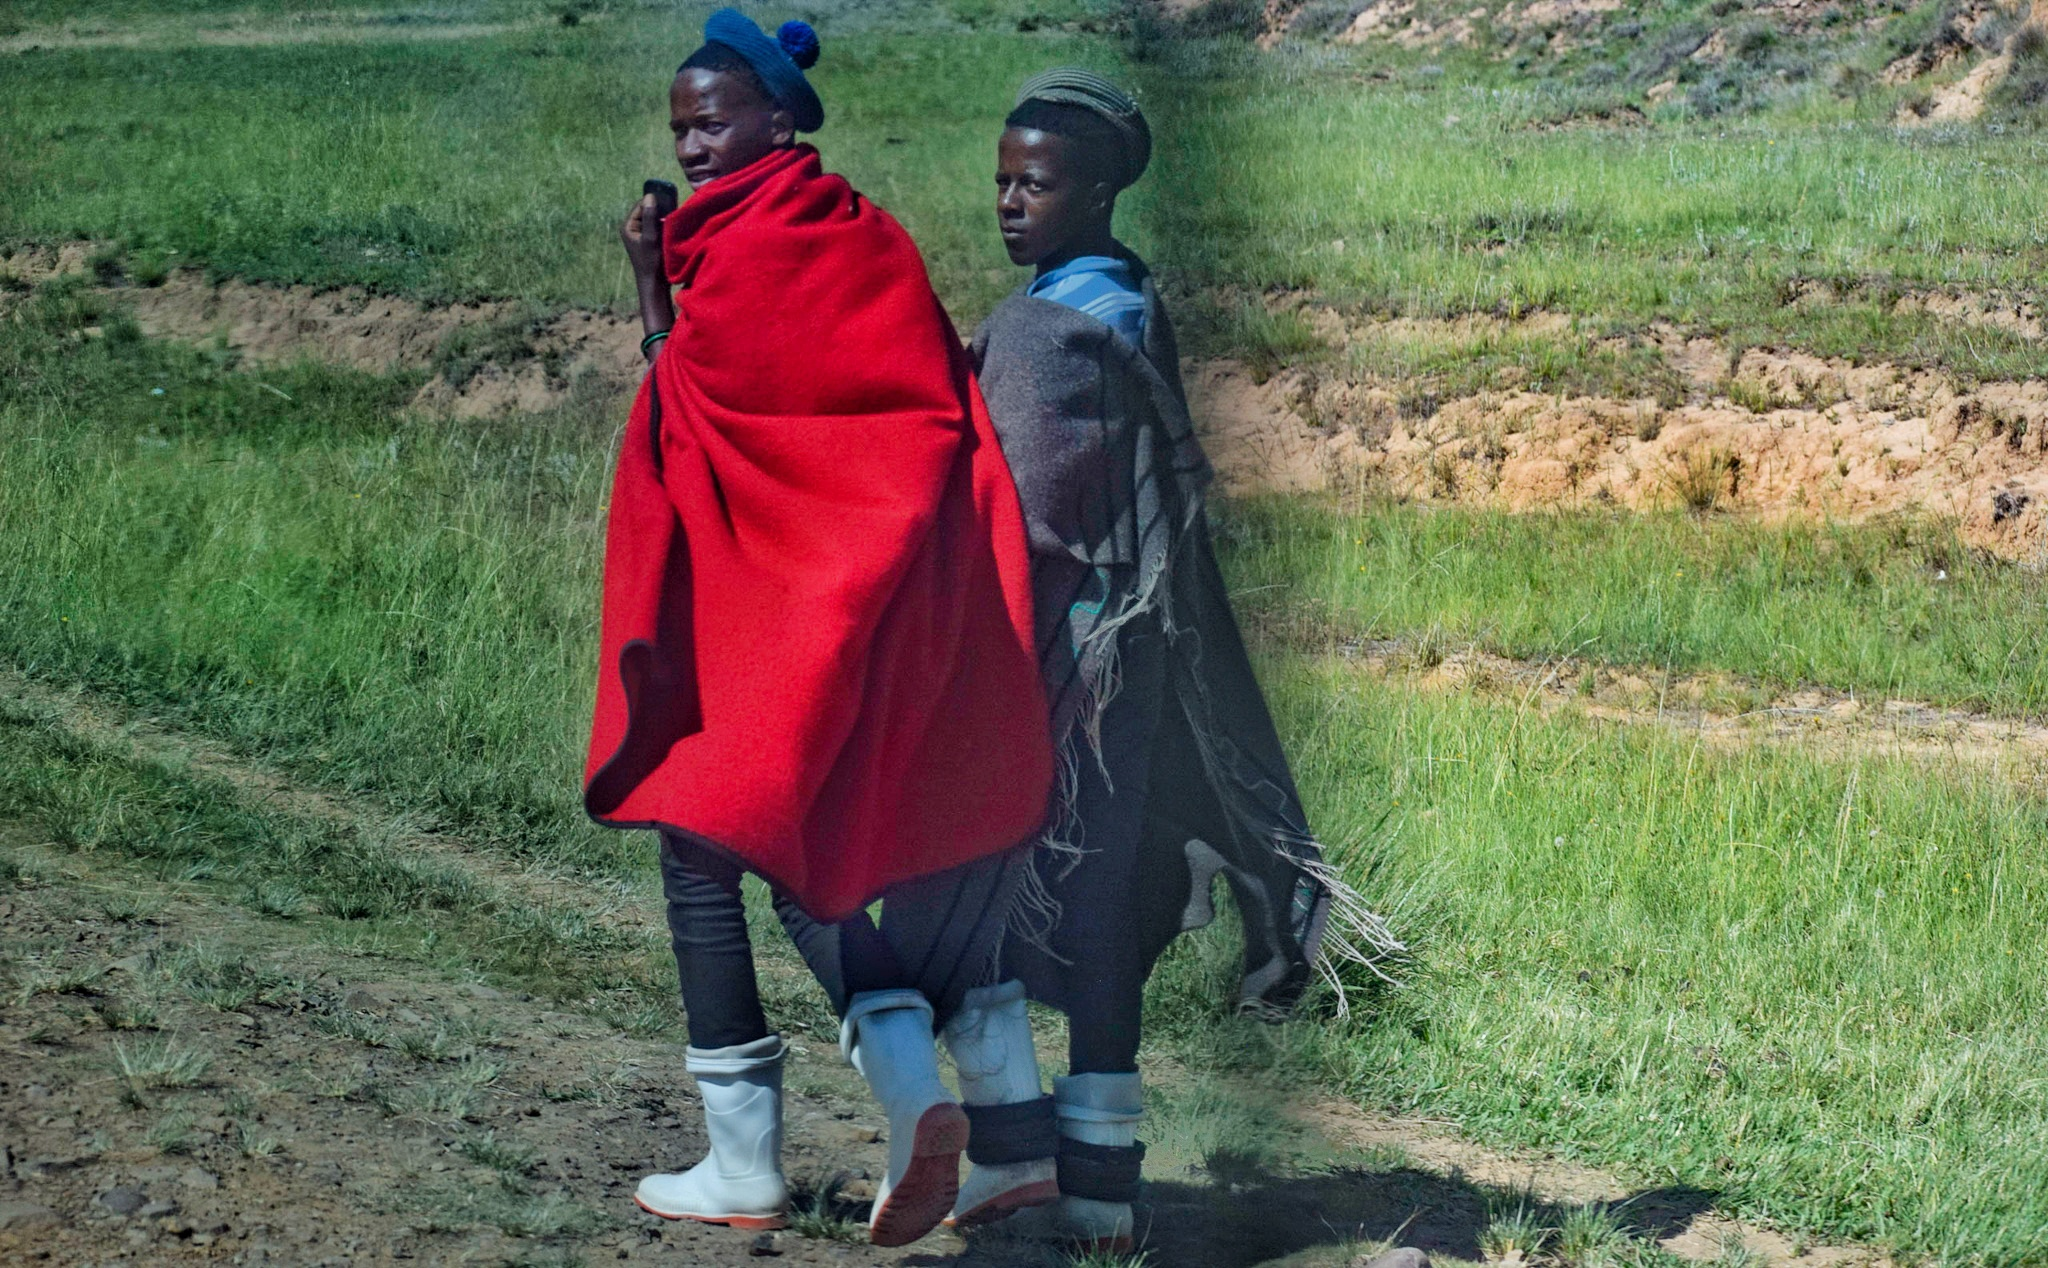 A kenyan girl in LESOTHO: traveling from South Africa to Lesotho by road